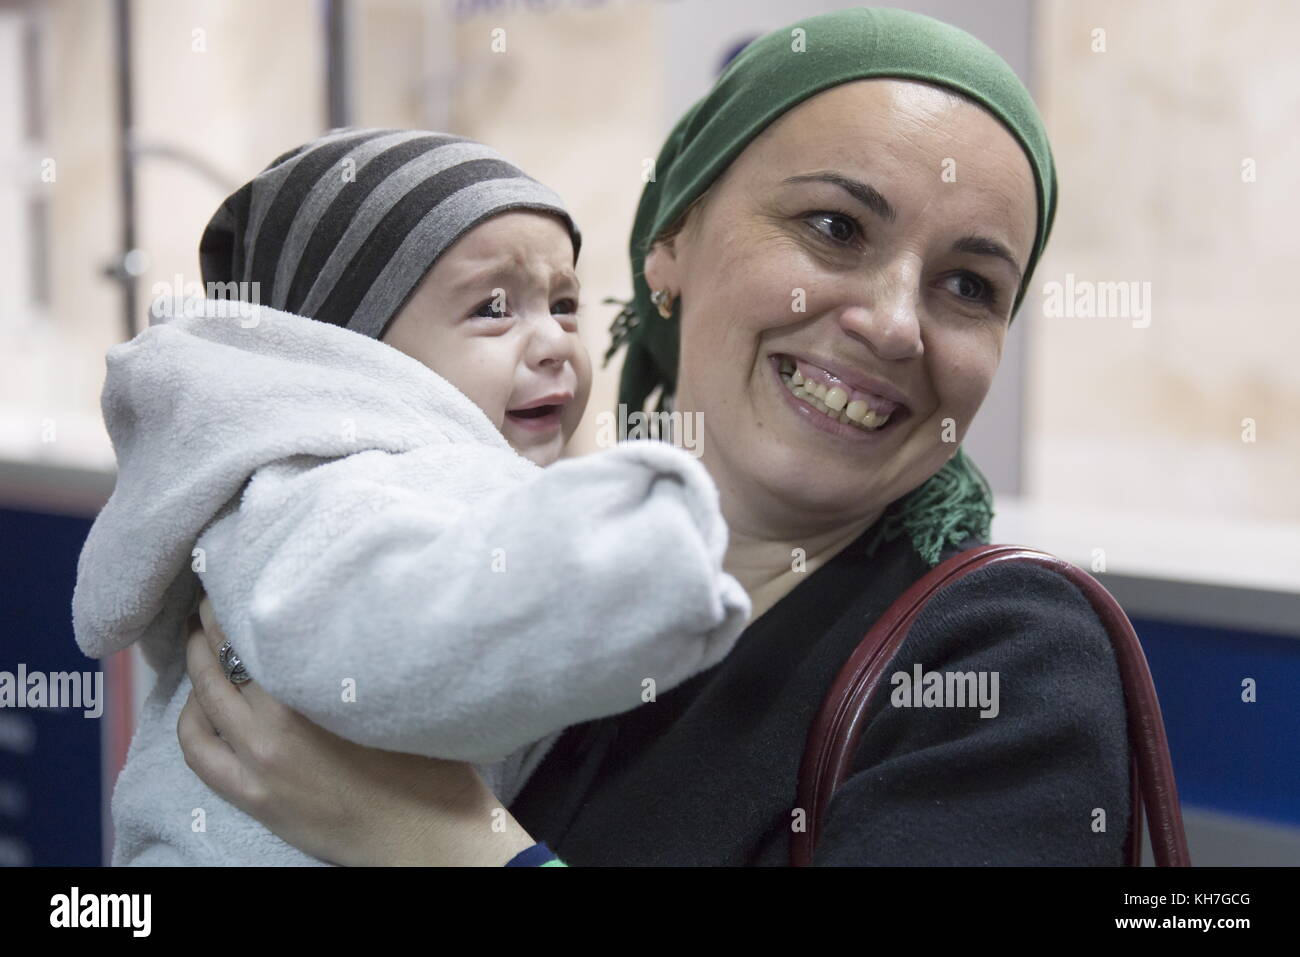 Grozny, Russia. 13th Nov, 2017. A smiling woman holds a baby as women and children evacuated from Syria arrive at - Stock Image